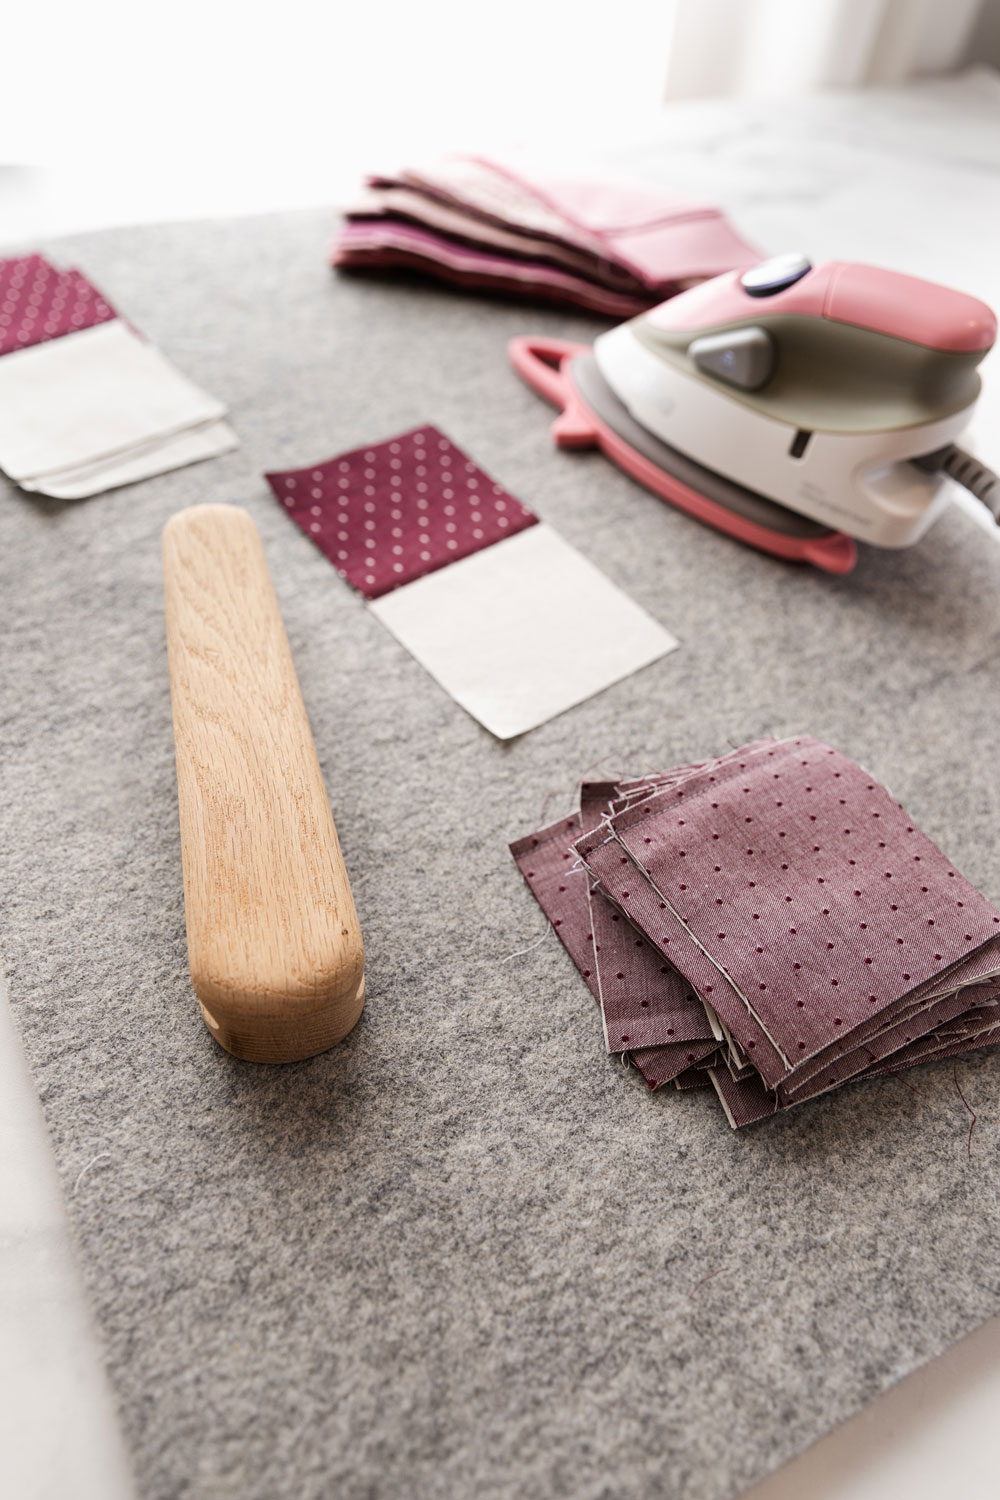 To get perfectly flat quilt blocks, press them with a wool pressing mat and a tailor's clapper | suzyquilts.com #quilting